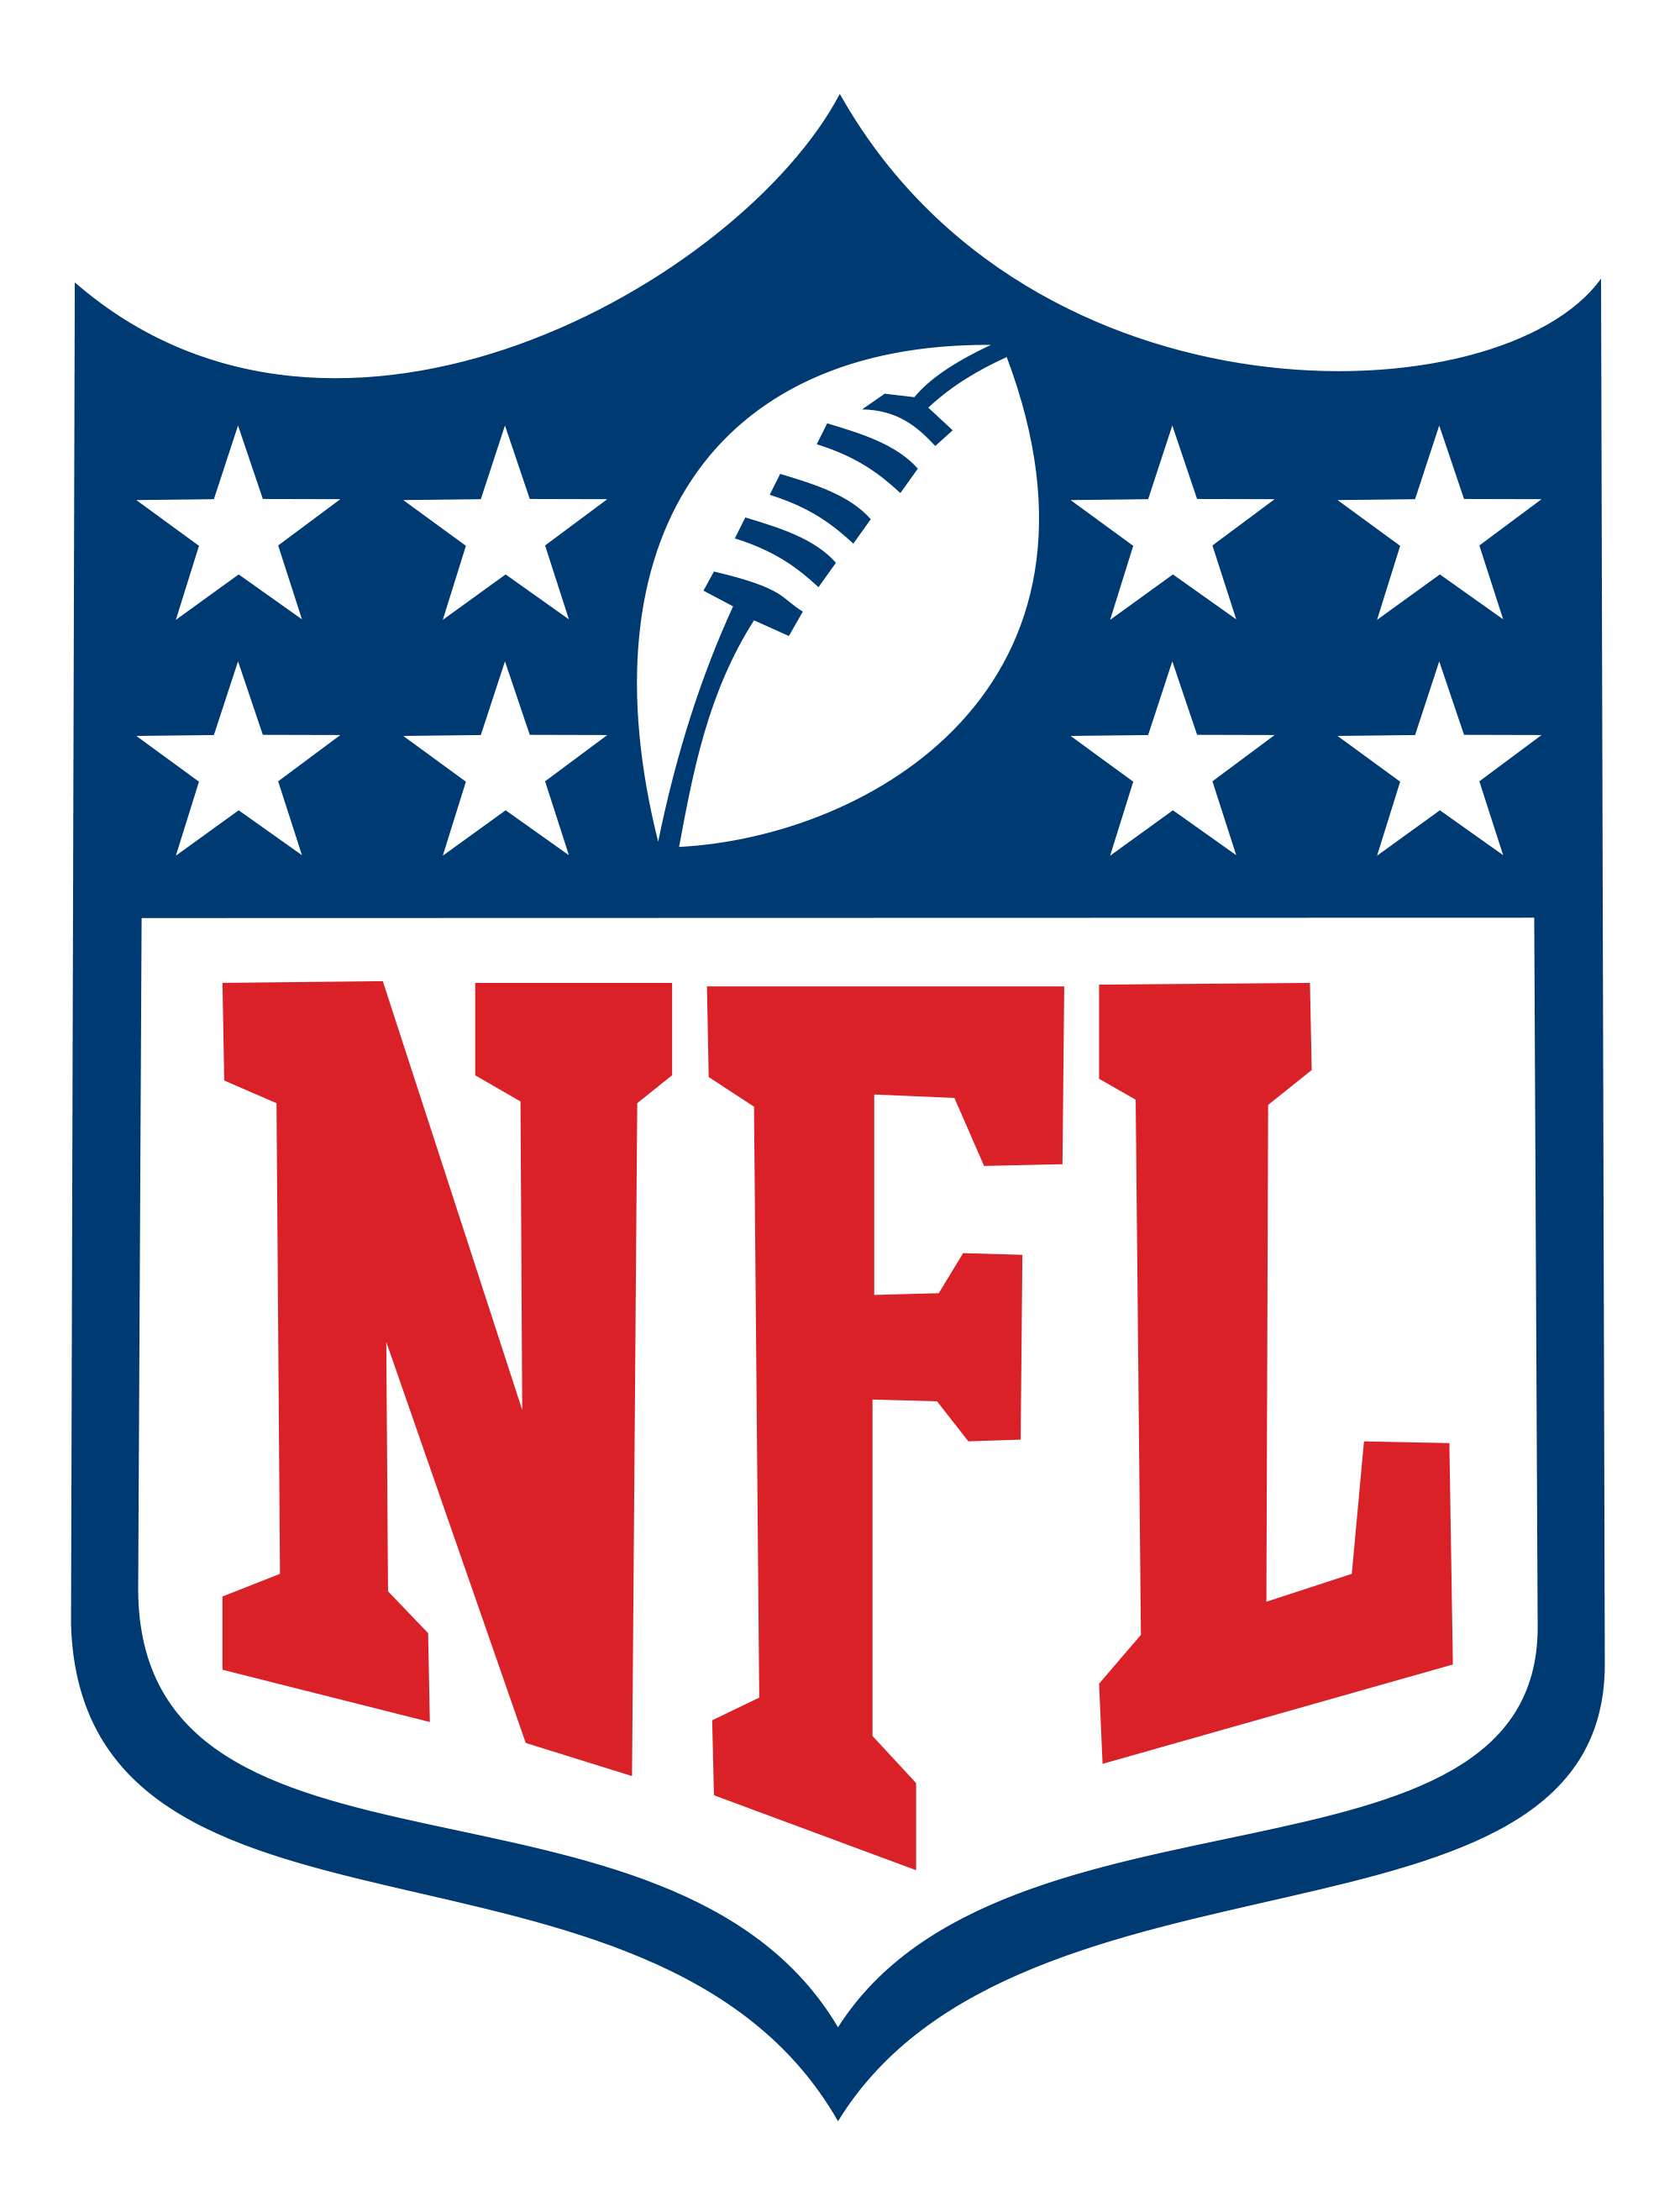 Nfl logo png. Transparent images pluspng icons